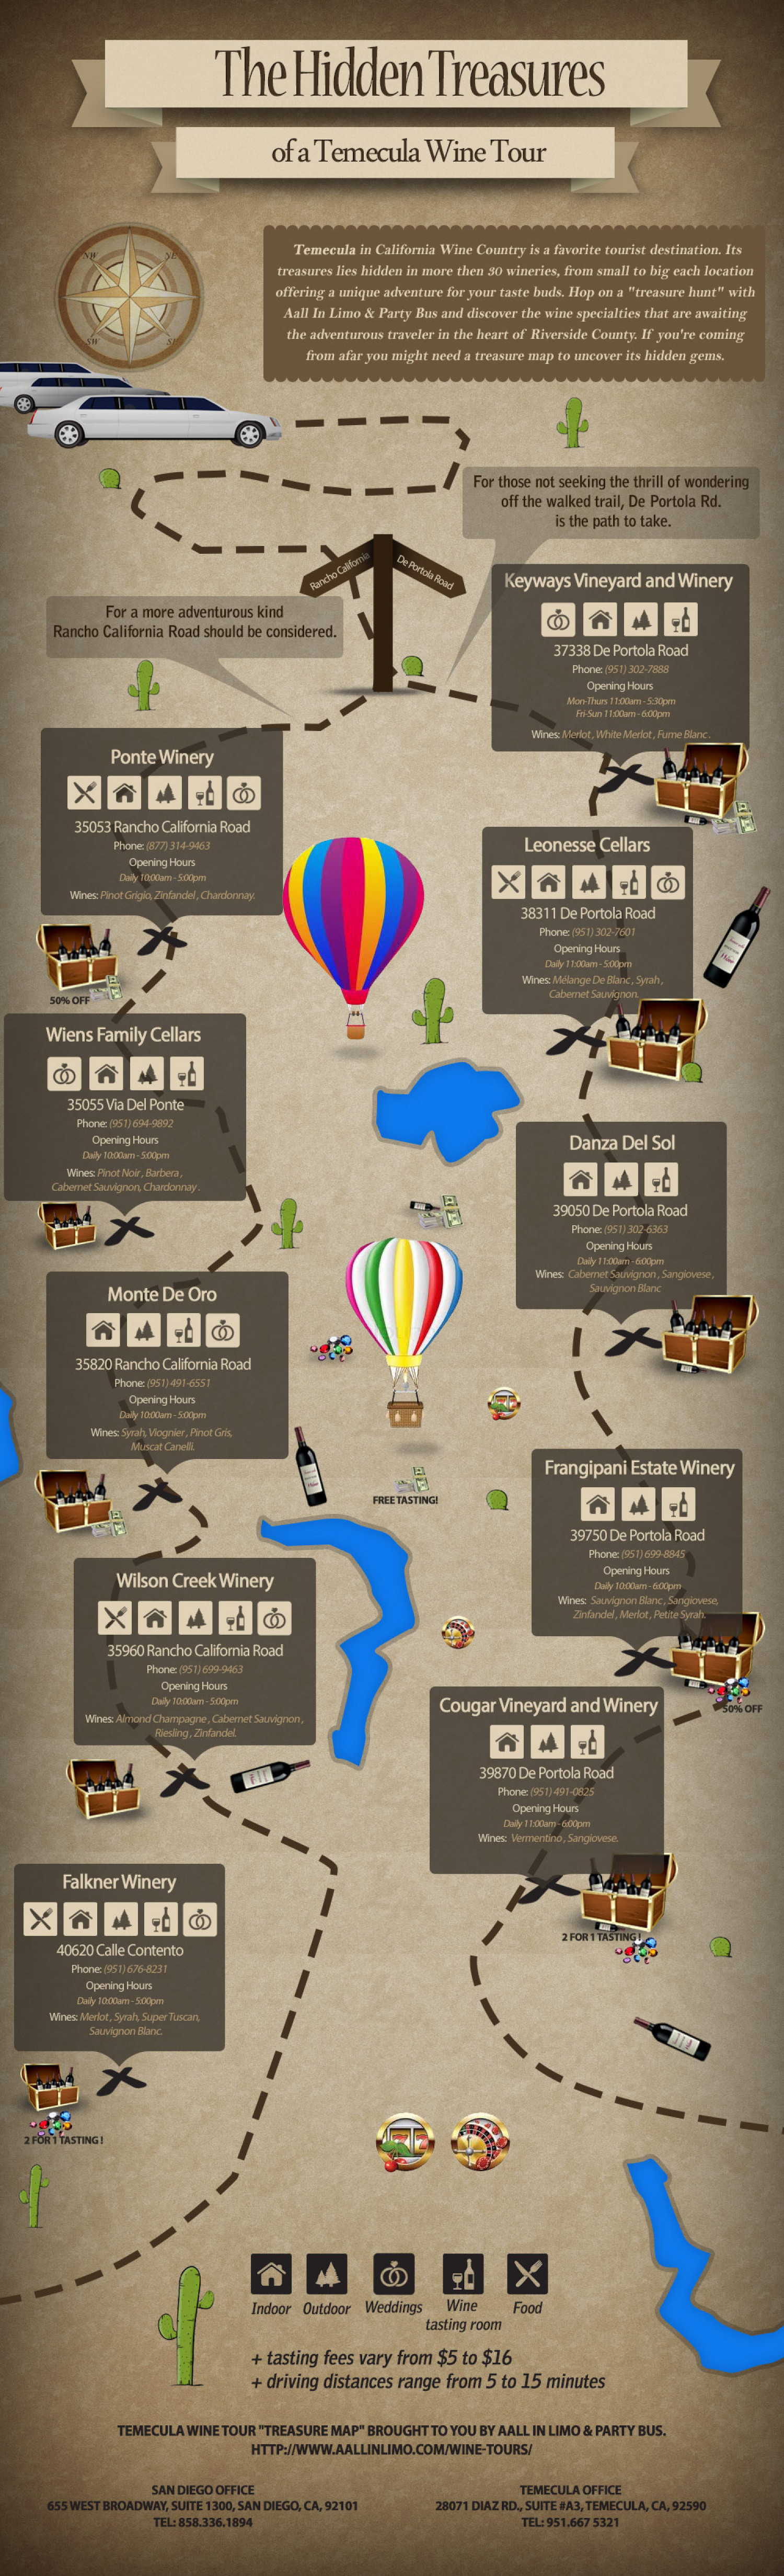 Tour map of Temecula Valley wineries Infographic